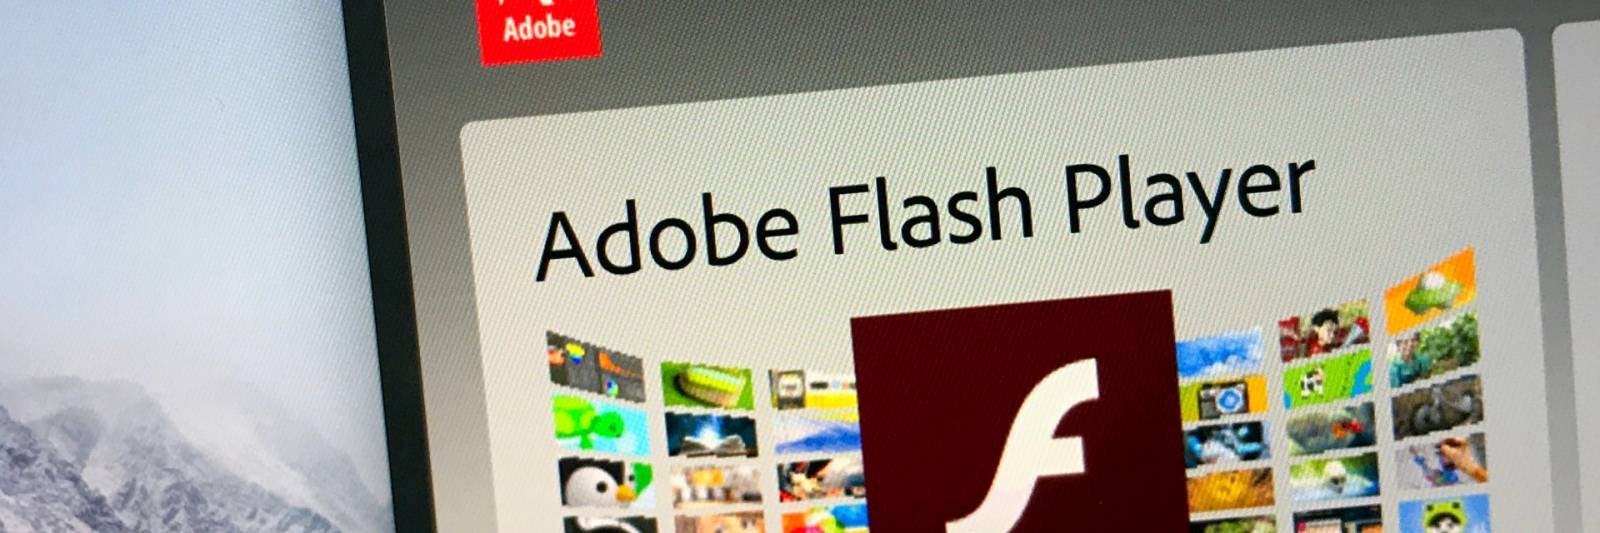 Adobe Flash Player Is Officially Dead